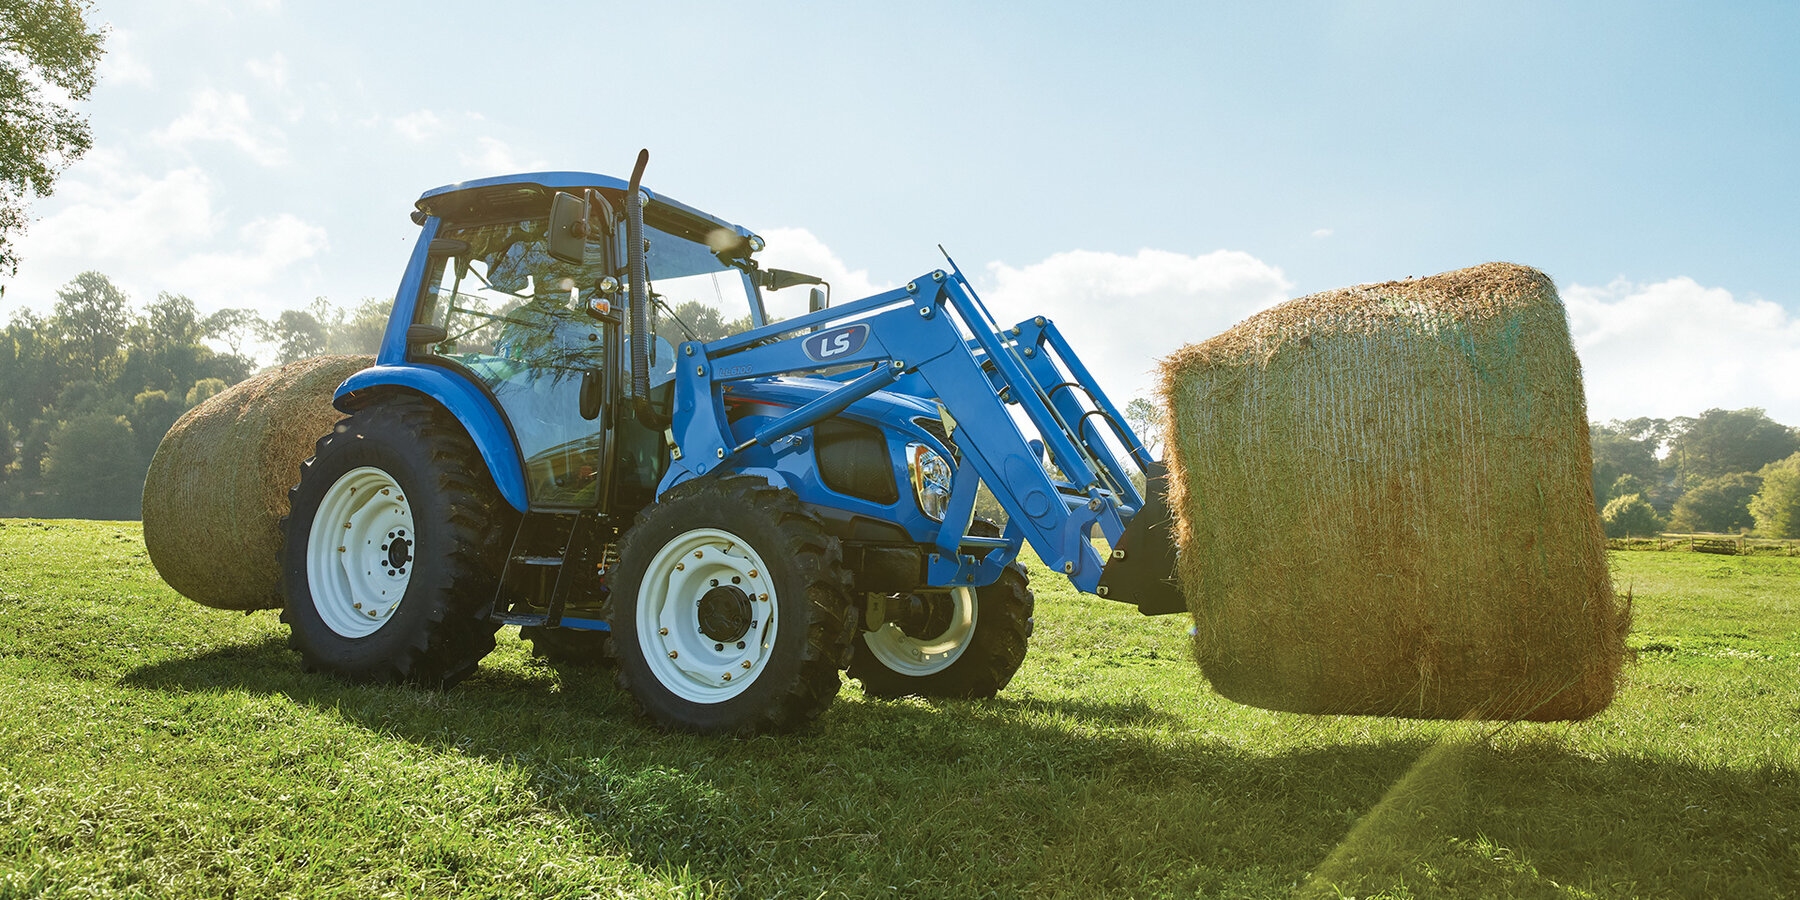 ls-tractor-background-image-2